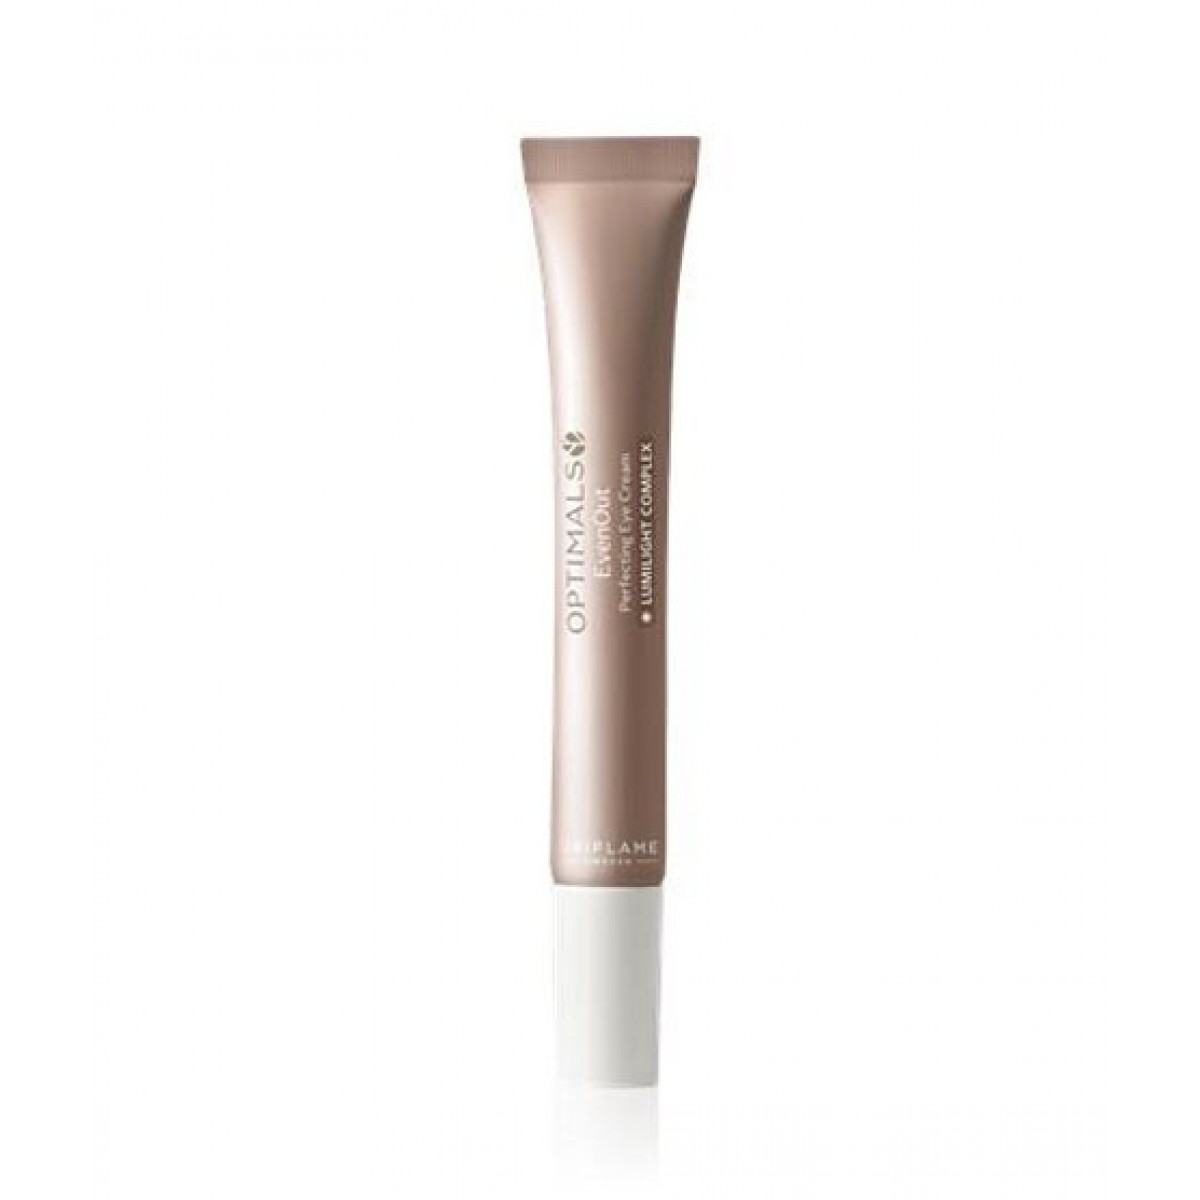 Oriflame Optimals Even Out Perfecting Eye Price In Pakistan Buy